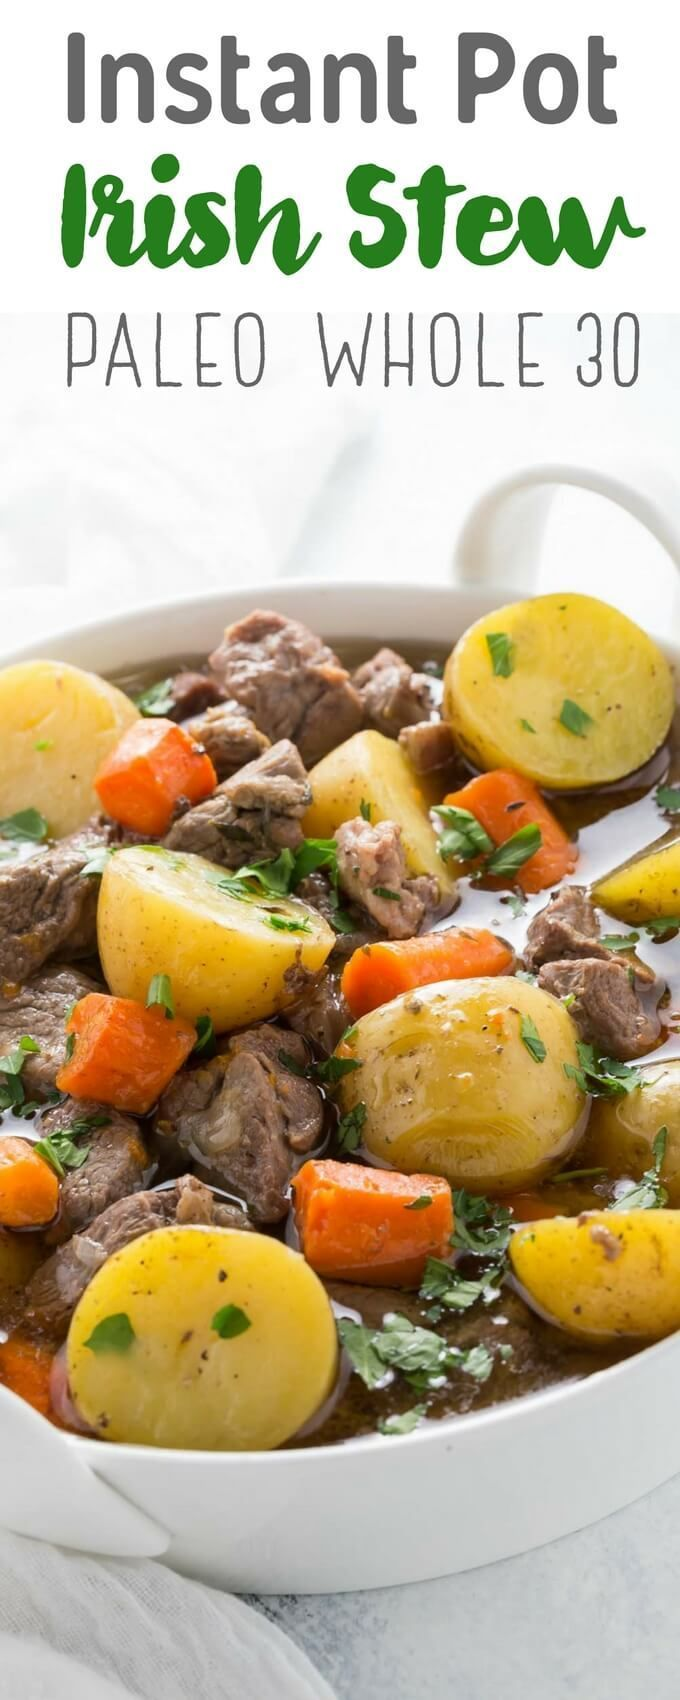 Pressure cooker Irish stew is an adaptation of a classic recipe with lamb, potatoes, carrots and herbs. It's gluten free, paleo and whole30, perfect for your Instant Pot or other electric pressure cooker. A great St Patricks' Day recipe too. | https://lom